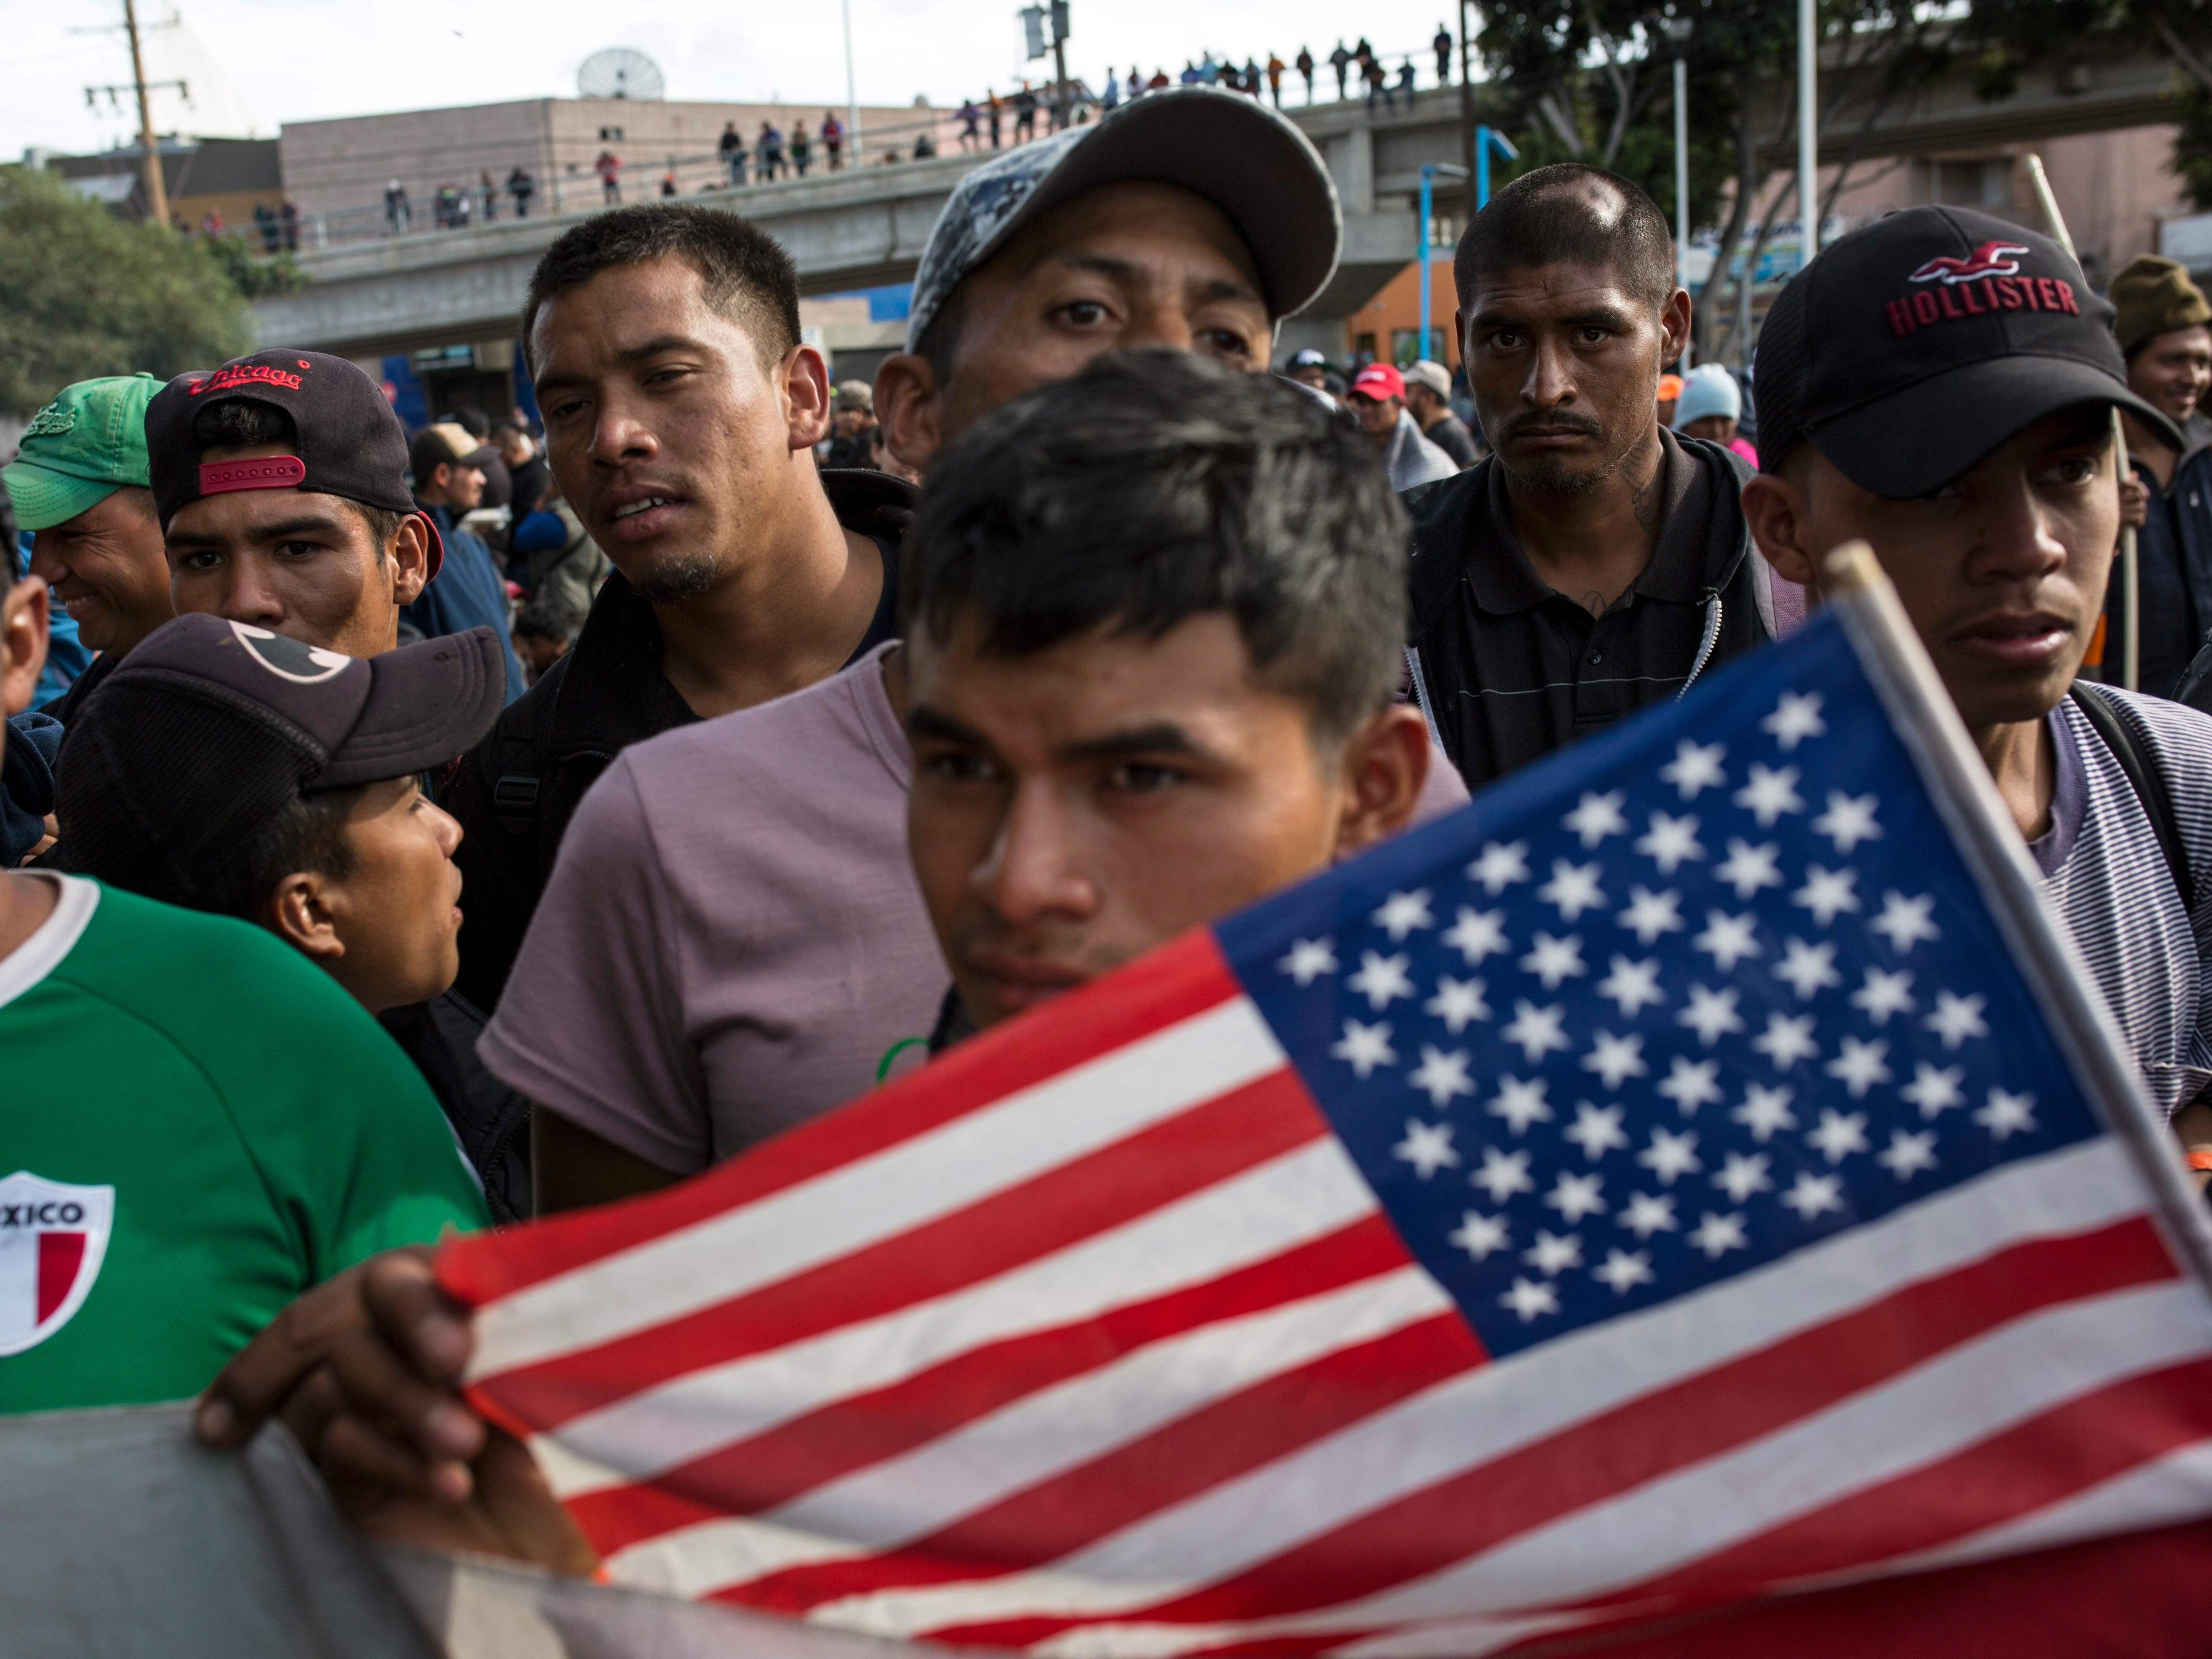 A migrant man holds a U.S. flag as he is confronted by a line of Mexican police in riot gear, when they tried to cross the border at the Chaparral border crossing in Tijuana, Mexico on Nov. 22, 2018. The group marched peacefully to the border crossing to demand better conditions and pushed to enter the U.S.